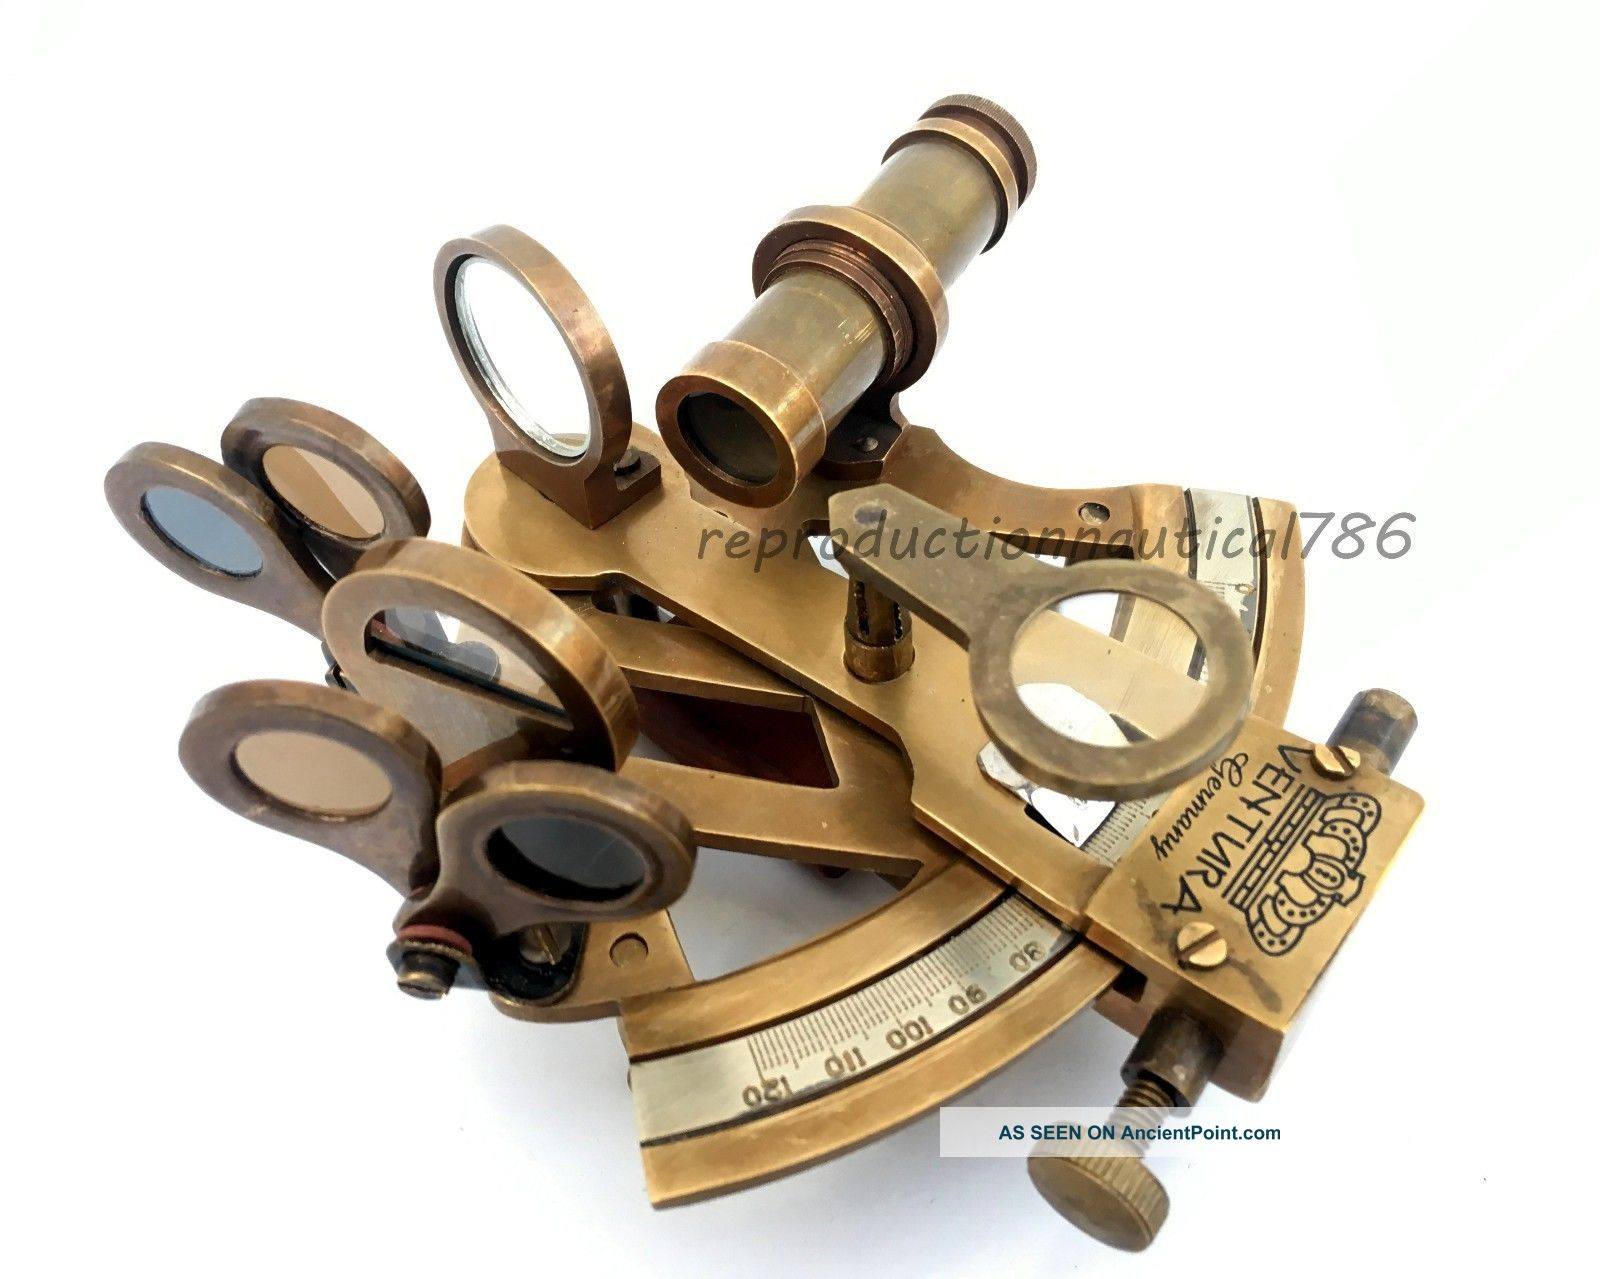 Handmade Germany Astrolabe Antique Brass Sextant Vintage Marine Sextant Decor Sextants photo